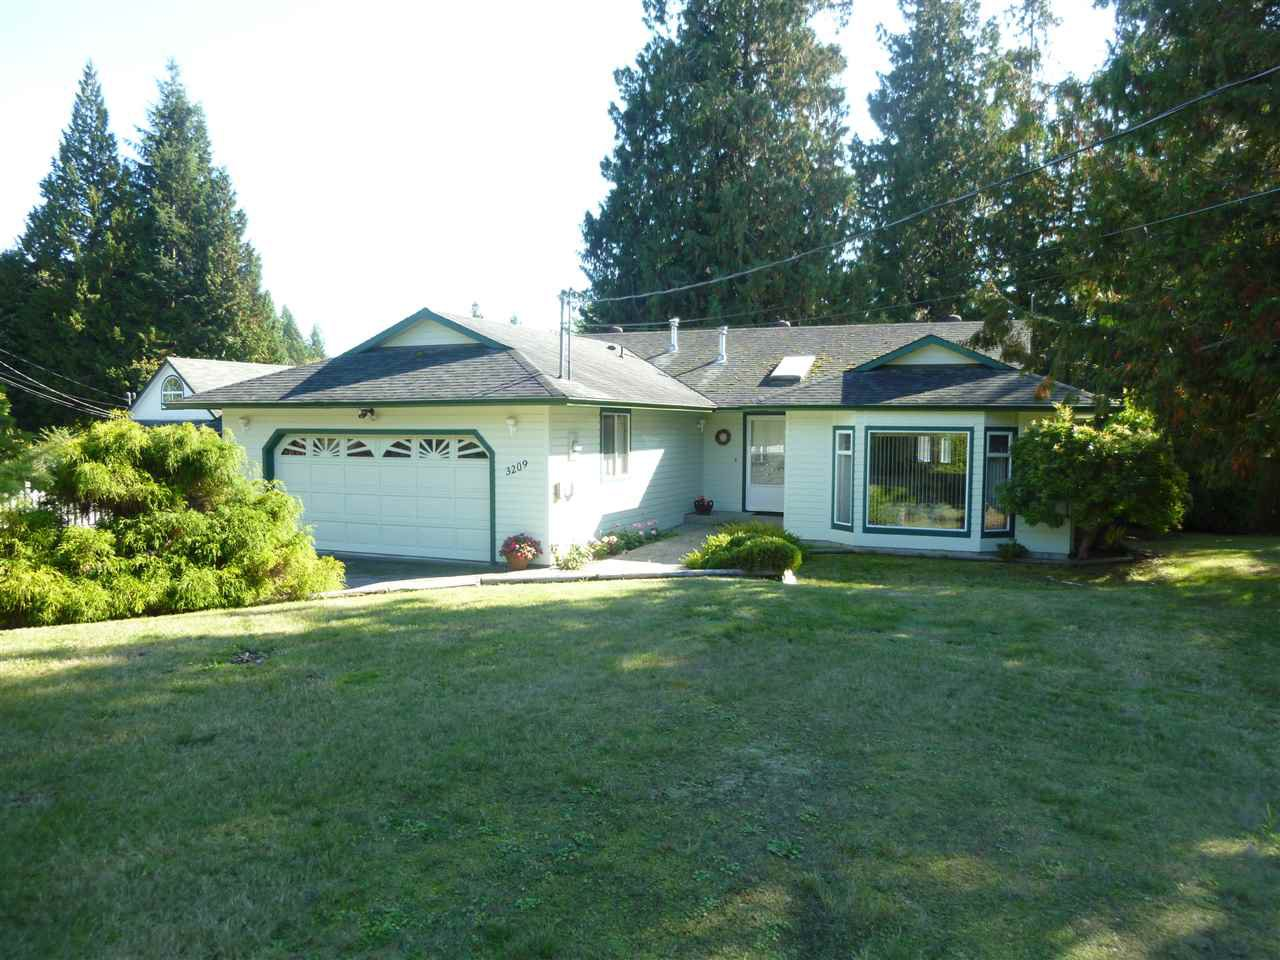 Main Photo: 3209 MOSSY ROCK Road: Roberts Creek House for sale (Sunshine Coast)  : MLS®# R2409142